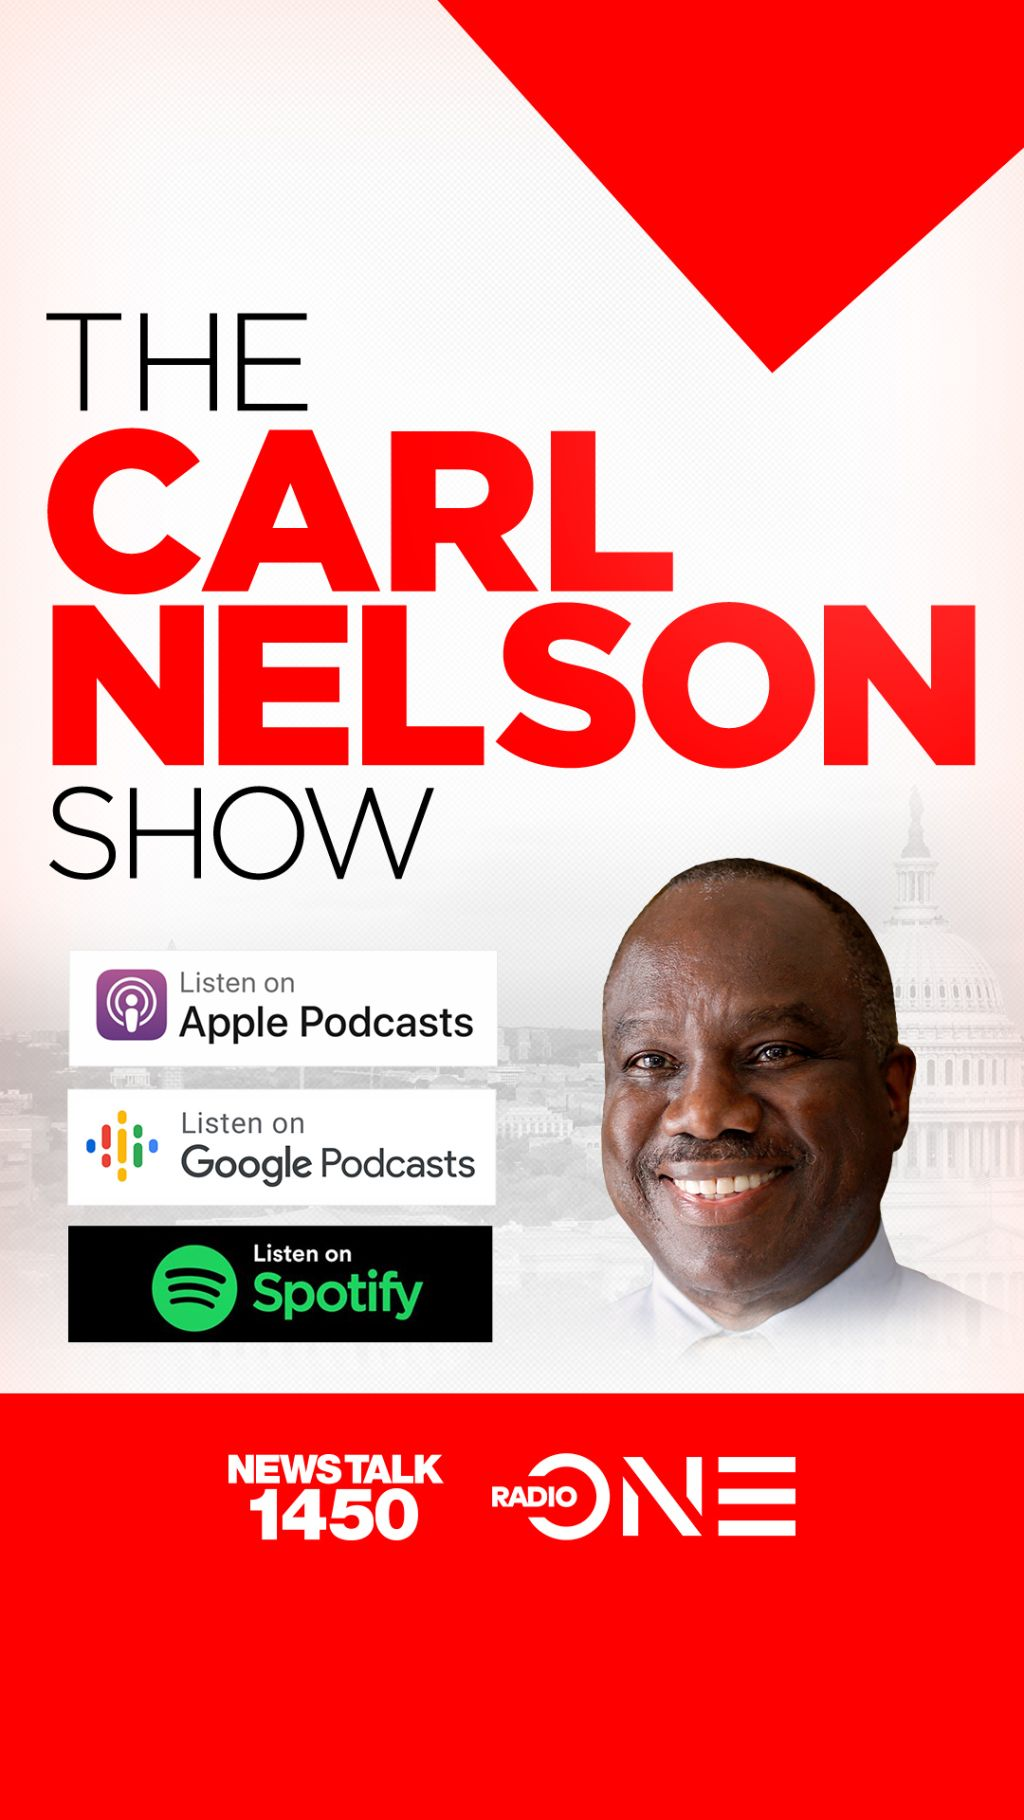 Carl Nelson Show